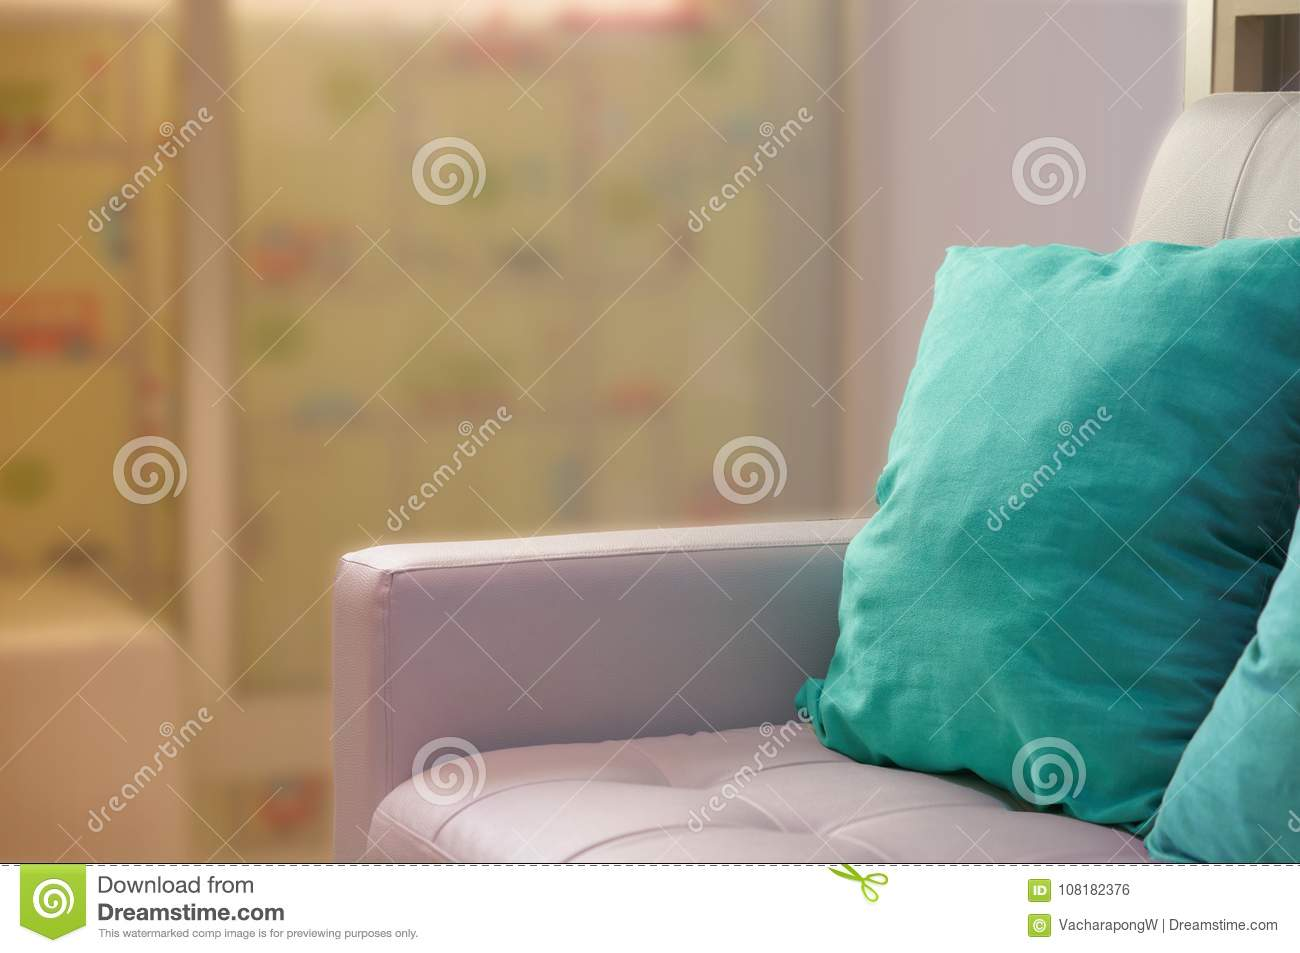 Green pillows on white sofa beside glass door